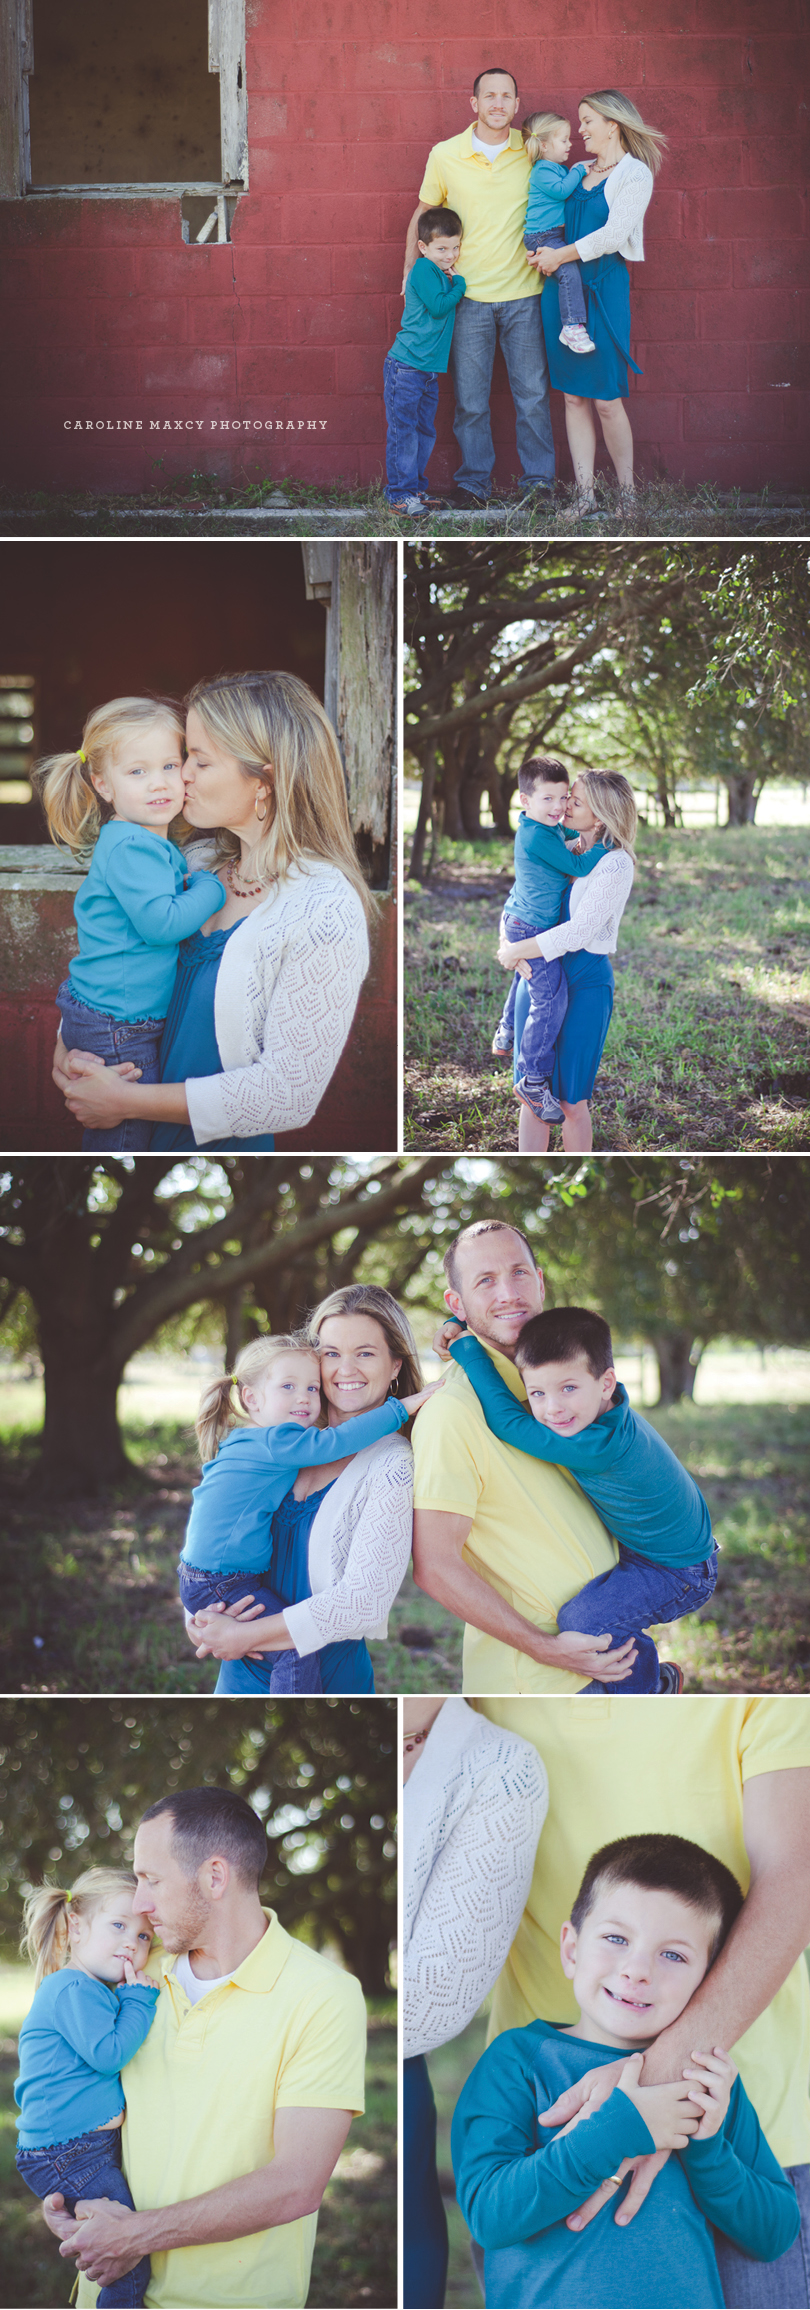 2012_CarolineMaxcyPhotography_Fall_Recap23